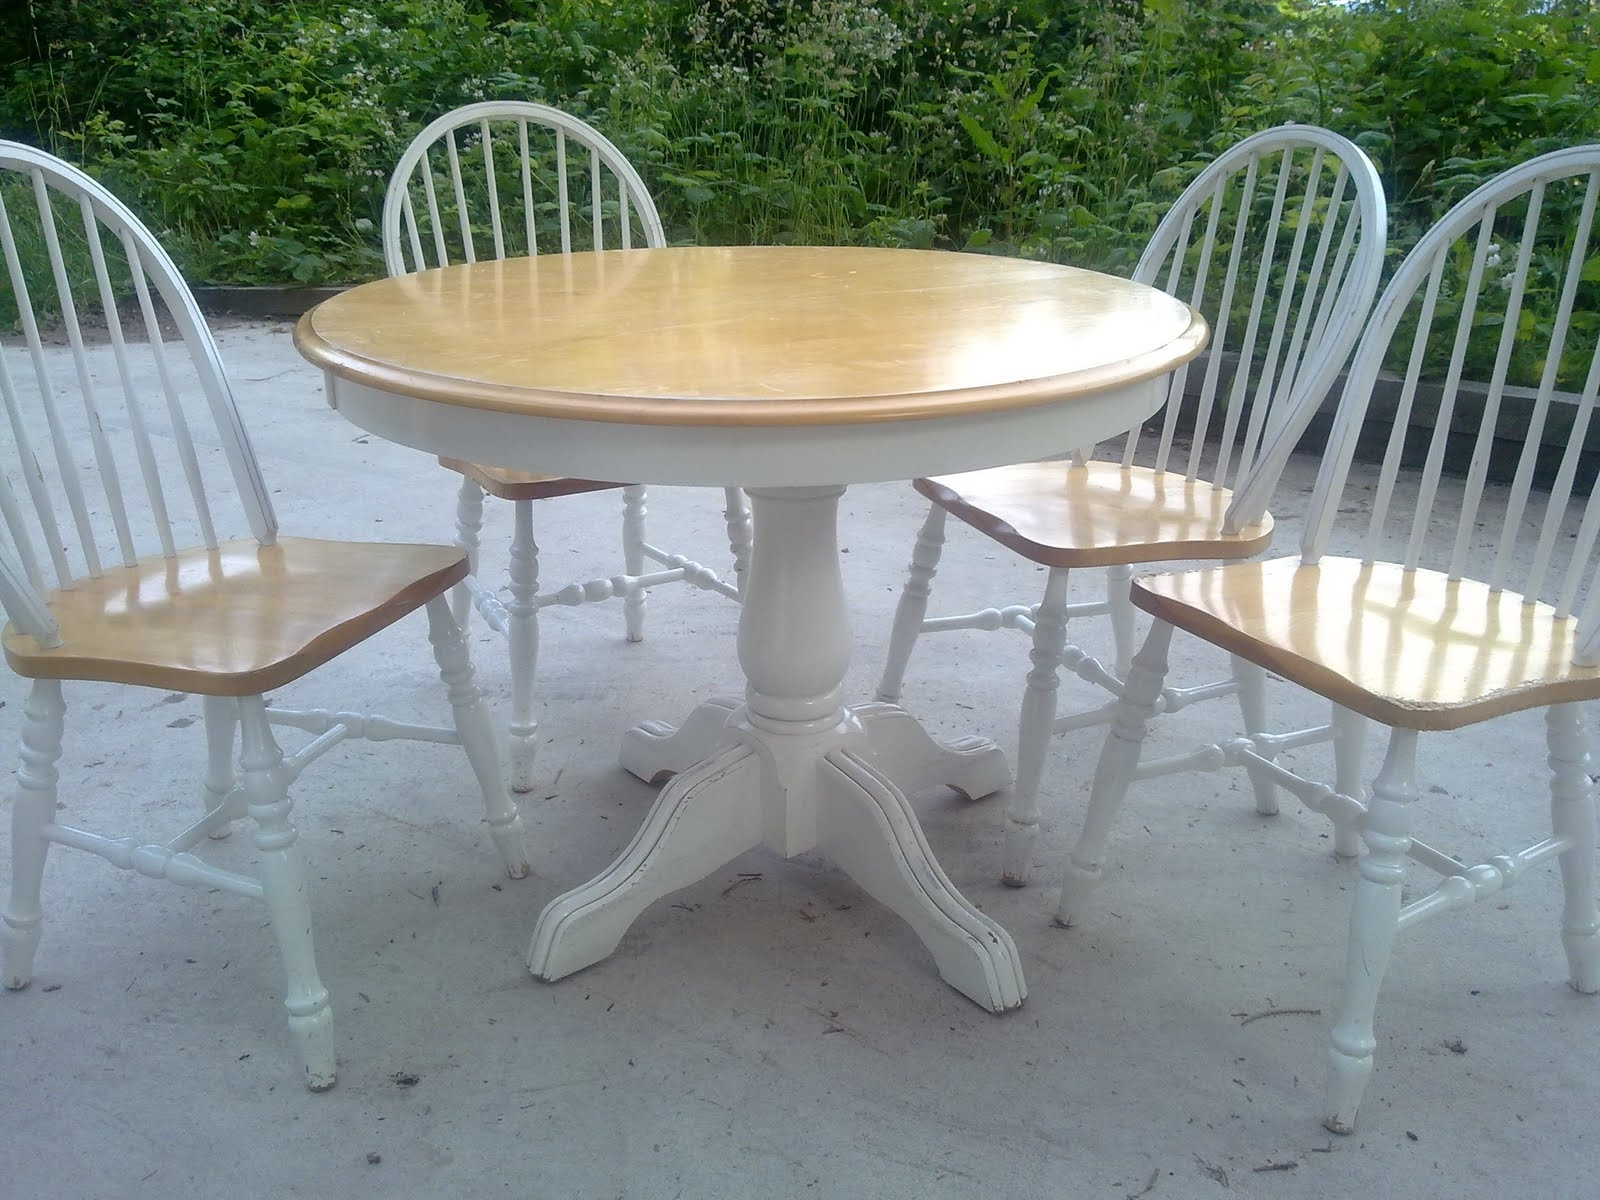 Top 50 Shabby Chic Round Dining Table And Chairs – Home Decor Ideas Regarding Most Up To Date Shabby Chic Dining Sets (View 23 of 25)